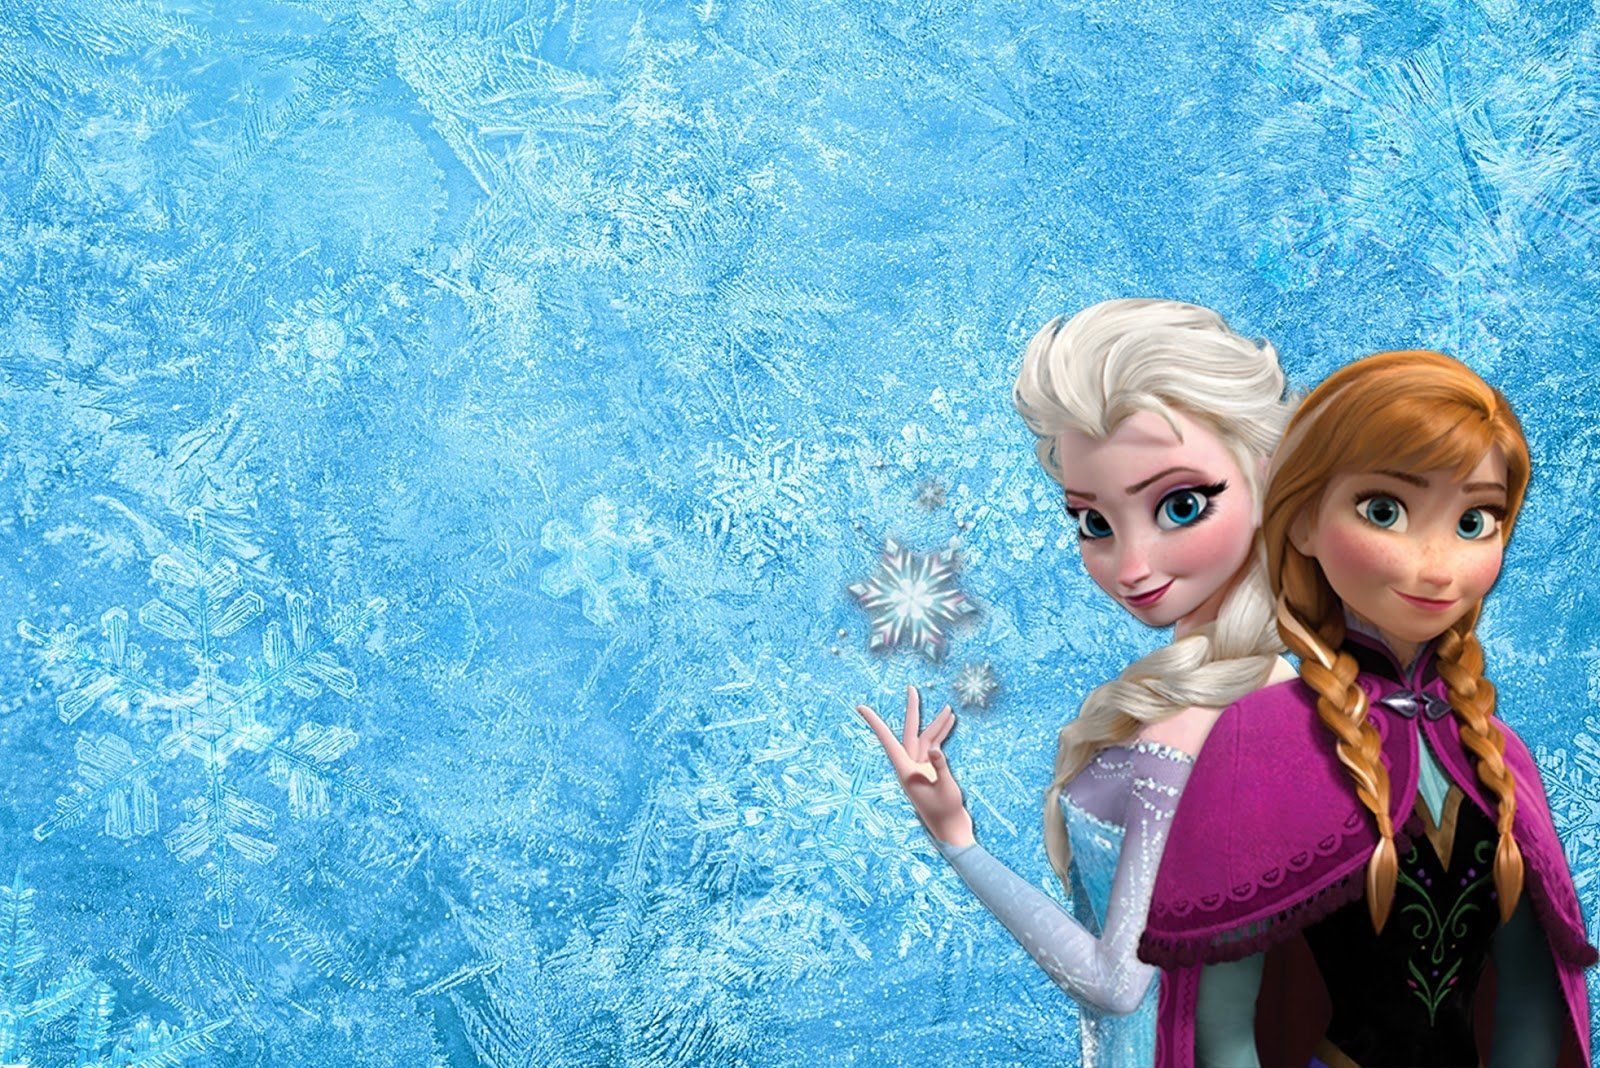 1600x1068 Frozen Wallpaper Anna And Elsa 312 Frozen Hd Wallpapers | Background ...